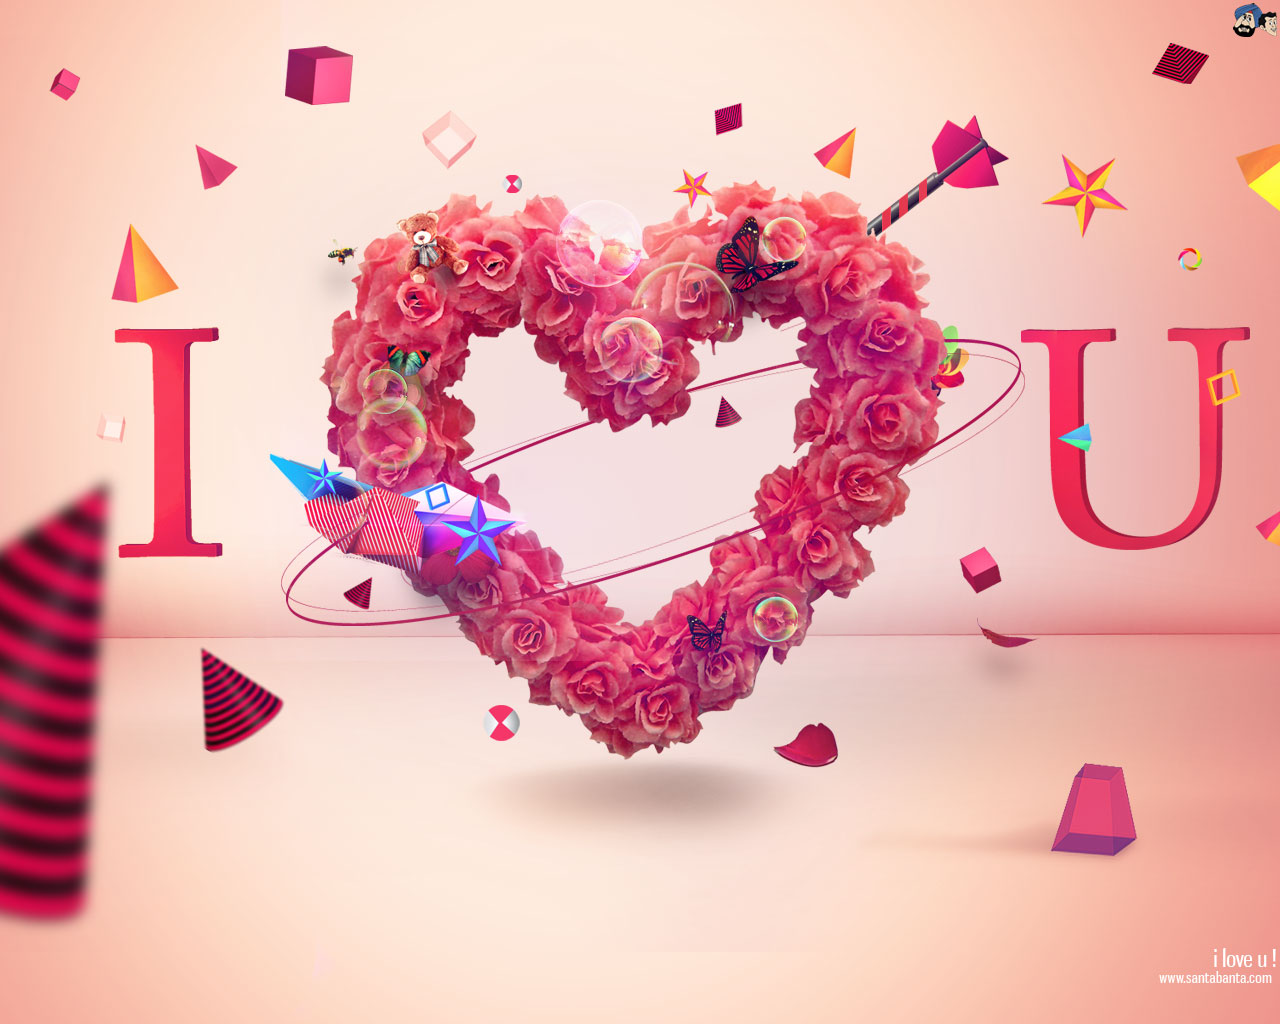 Love Wallpaper Add Name : Love Images For Him with Quotes for Myspace Dwonload To Draw Hd Tumblr For Facebook Wallpaper ...